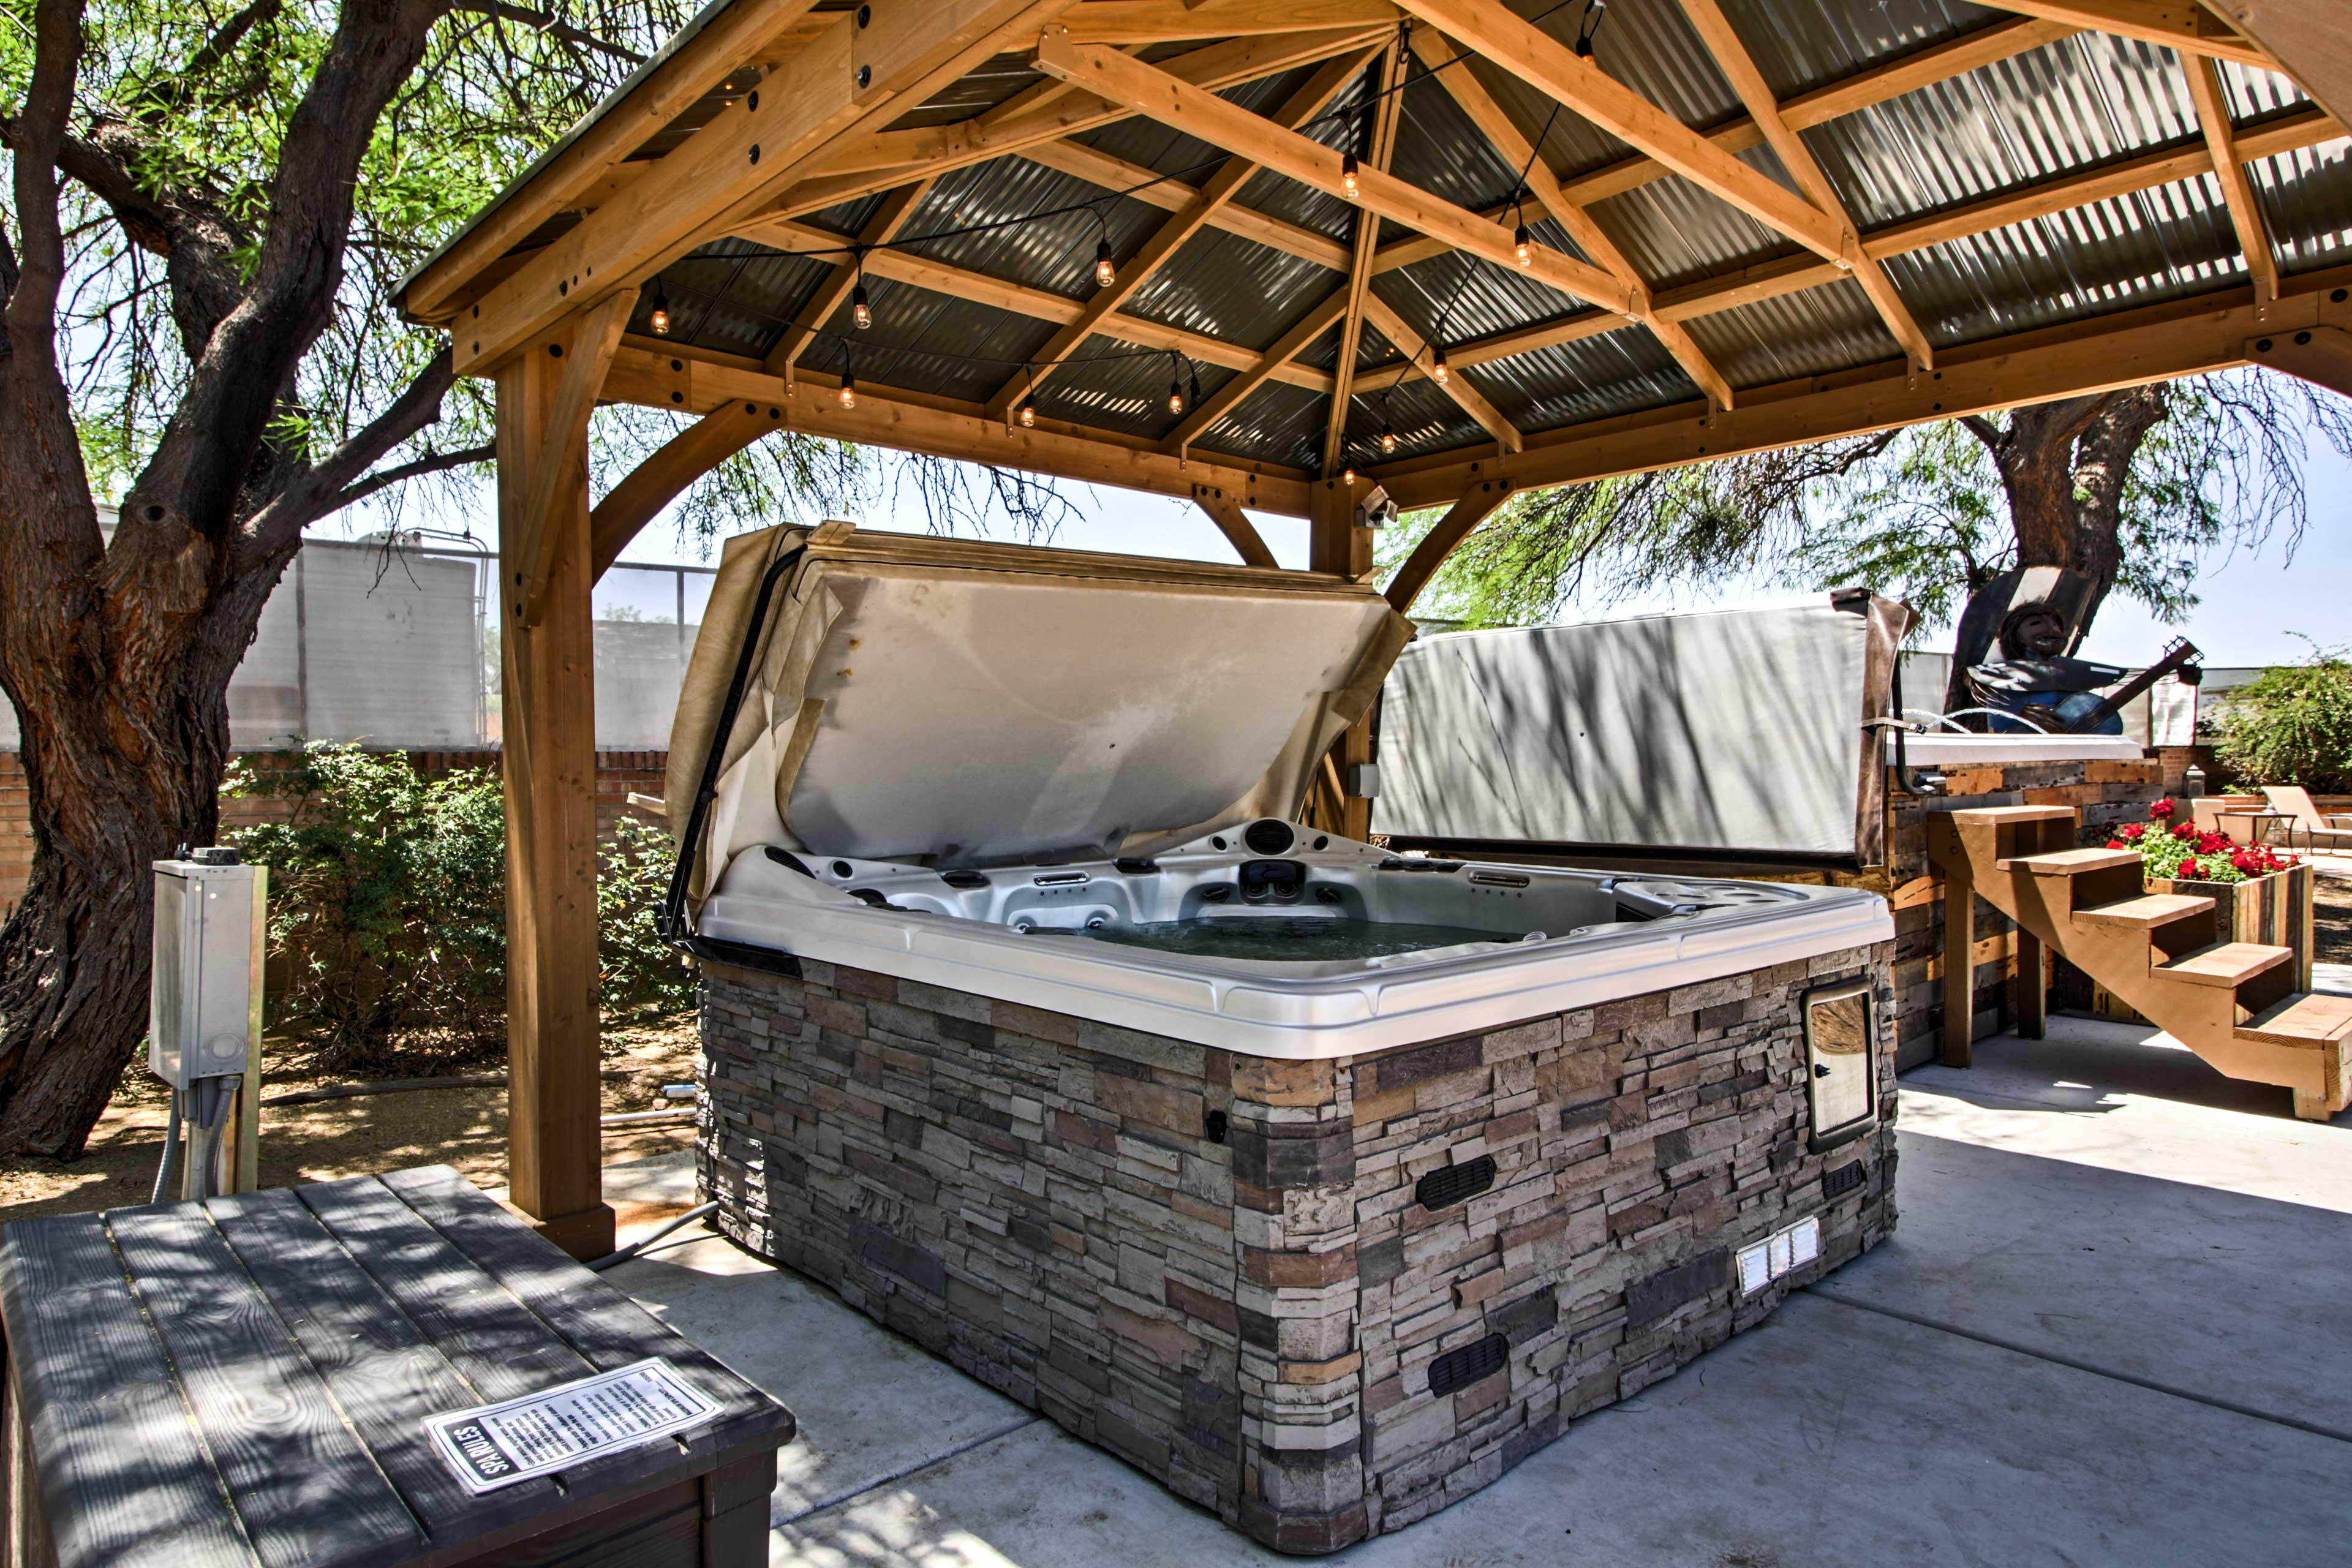 Head outside to the hot tub!